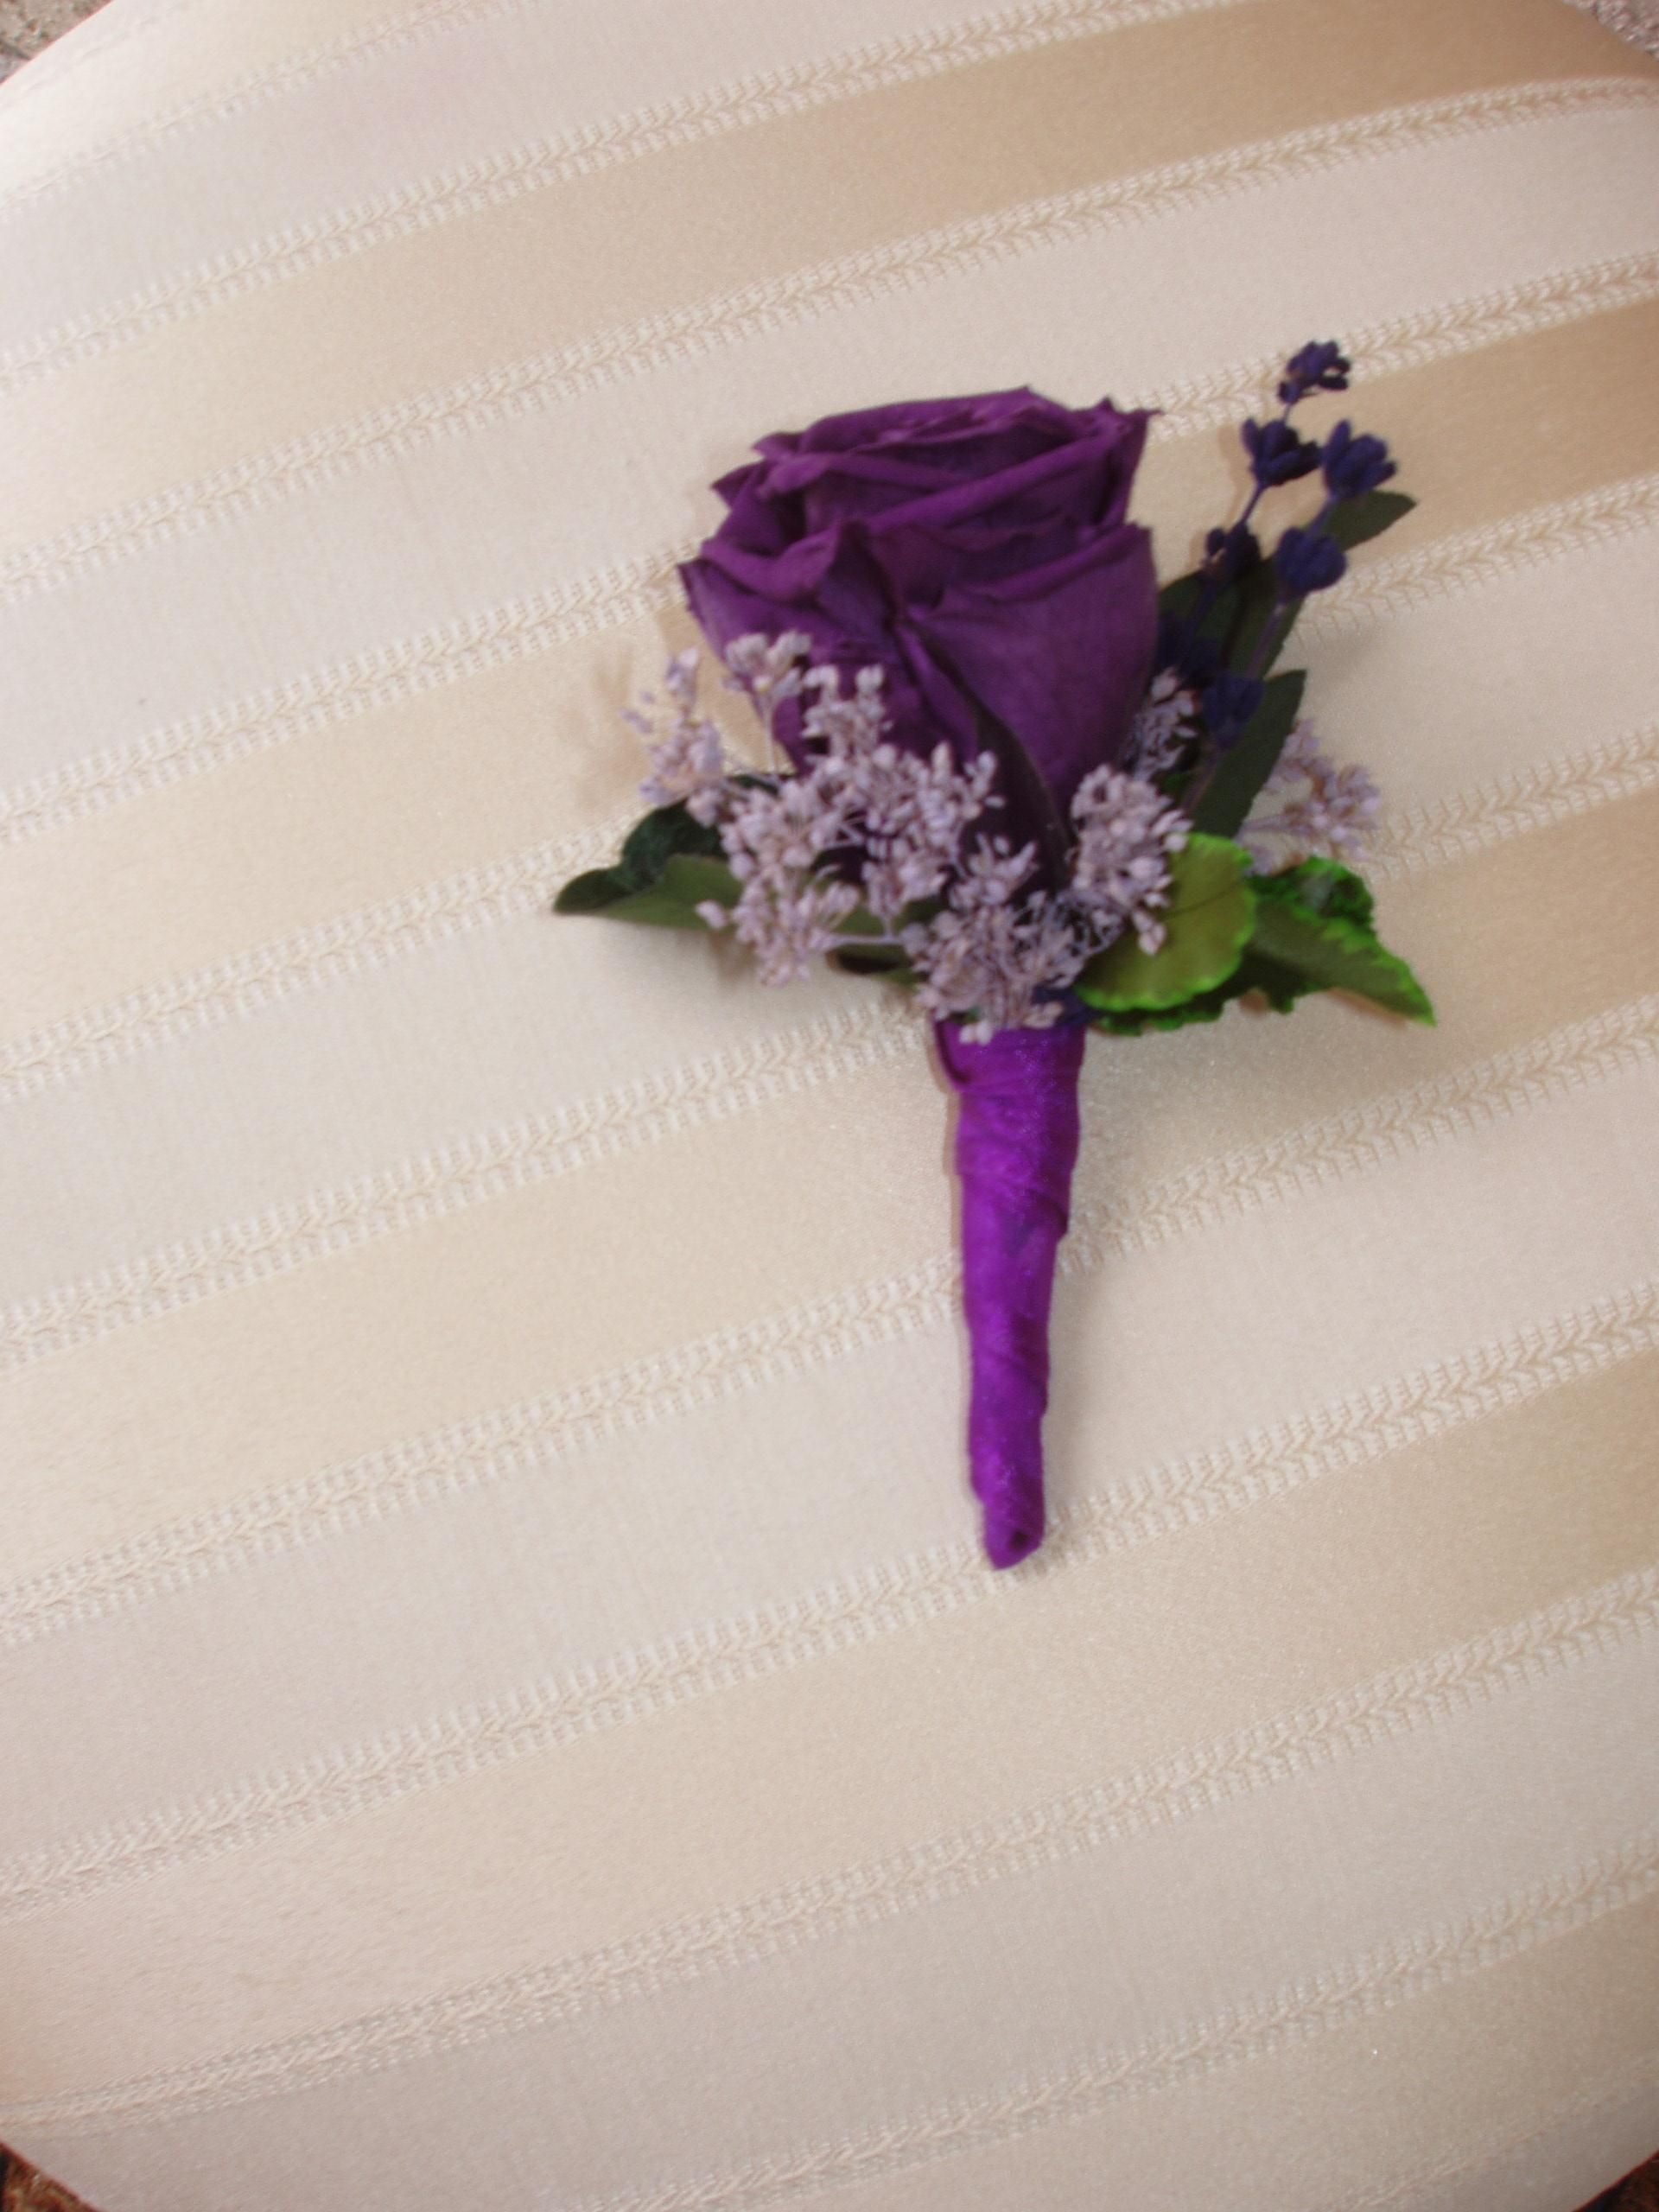 All the groomsmen have white roses with purple flowers and kevin has all the groomsmen have white roses with purple flowers and kevin has purple with white possibly or vice versa mightylinksfo